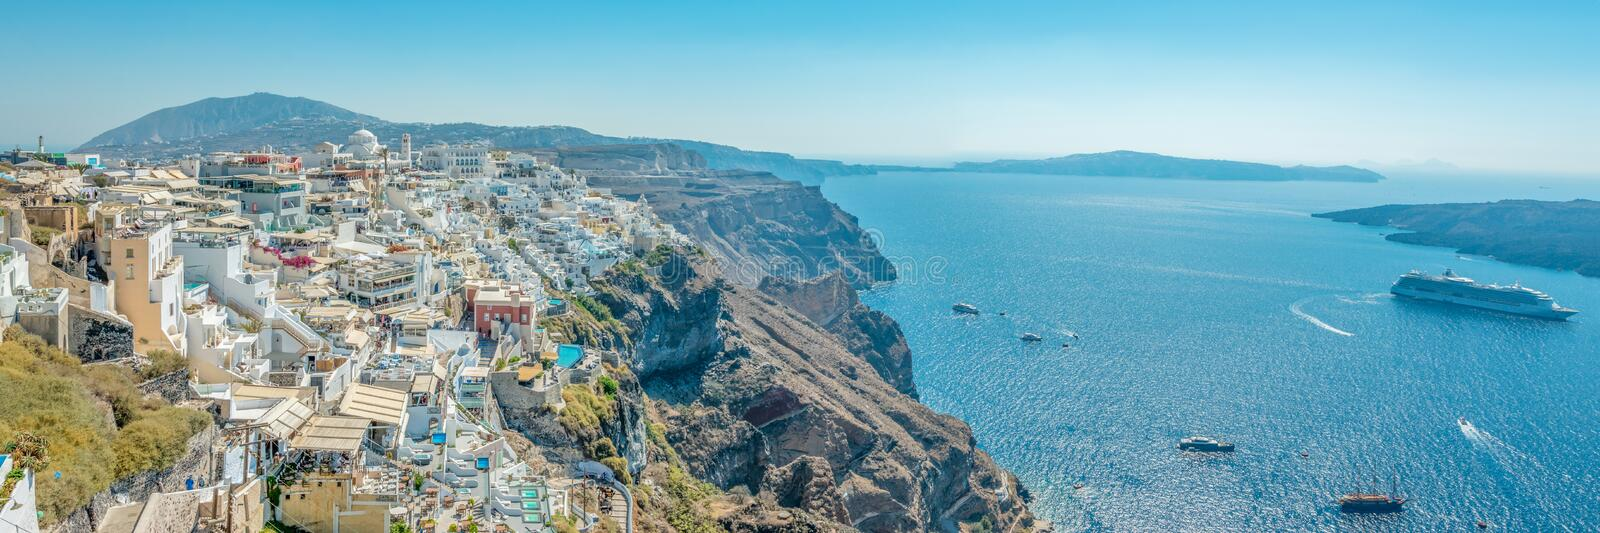 Panoramic view of Thira town with traditional and famous houses and churches with blue domes over the Caldera on Santorini island. royalty free stock photos